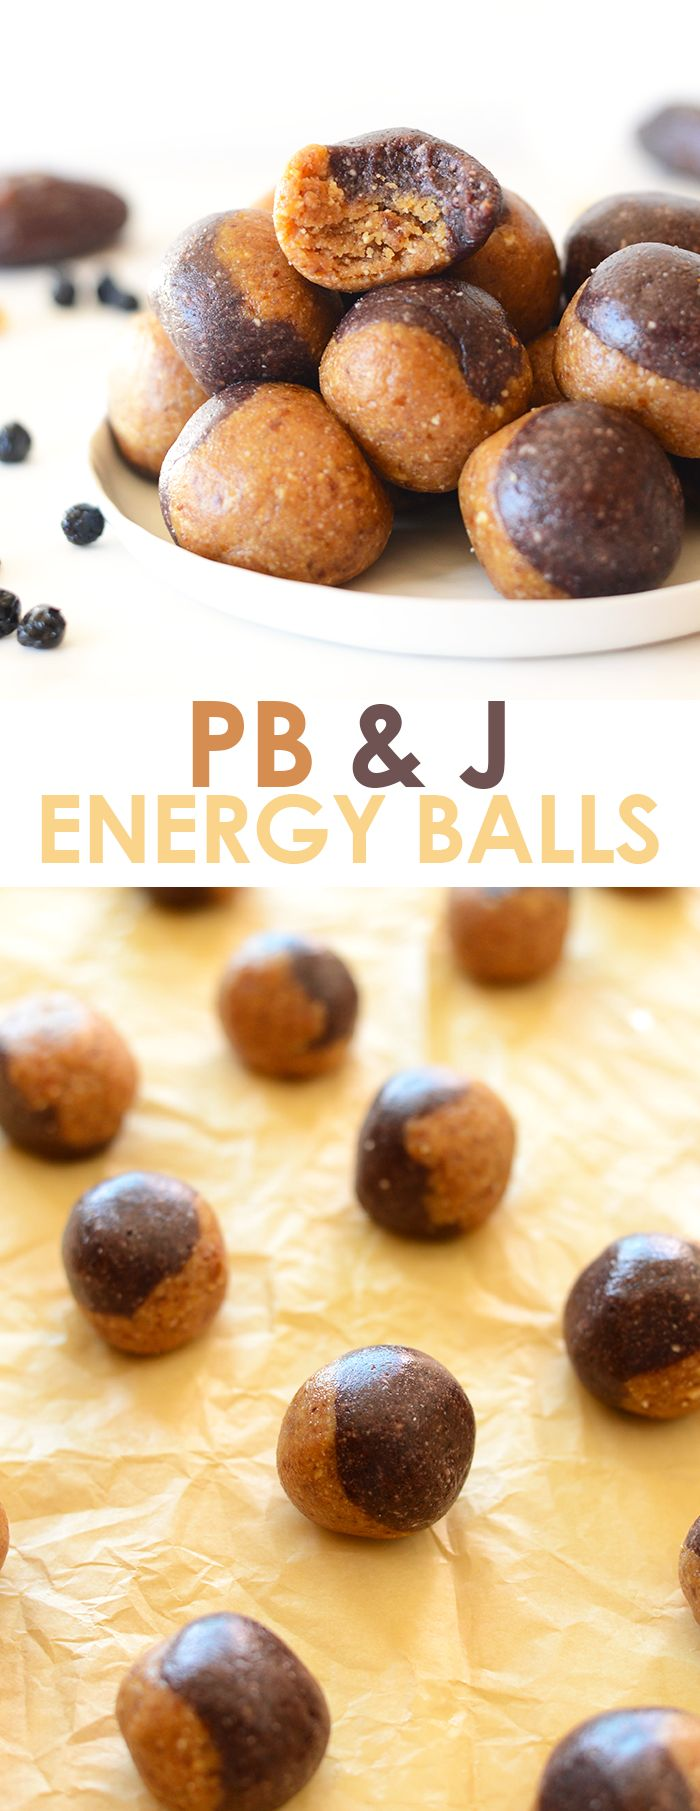 These no-bake peanut butter and jelly inspired energy balls are a healthy grab and go snack made with dried fruit and nuts!